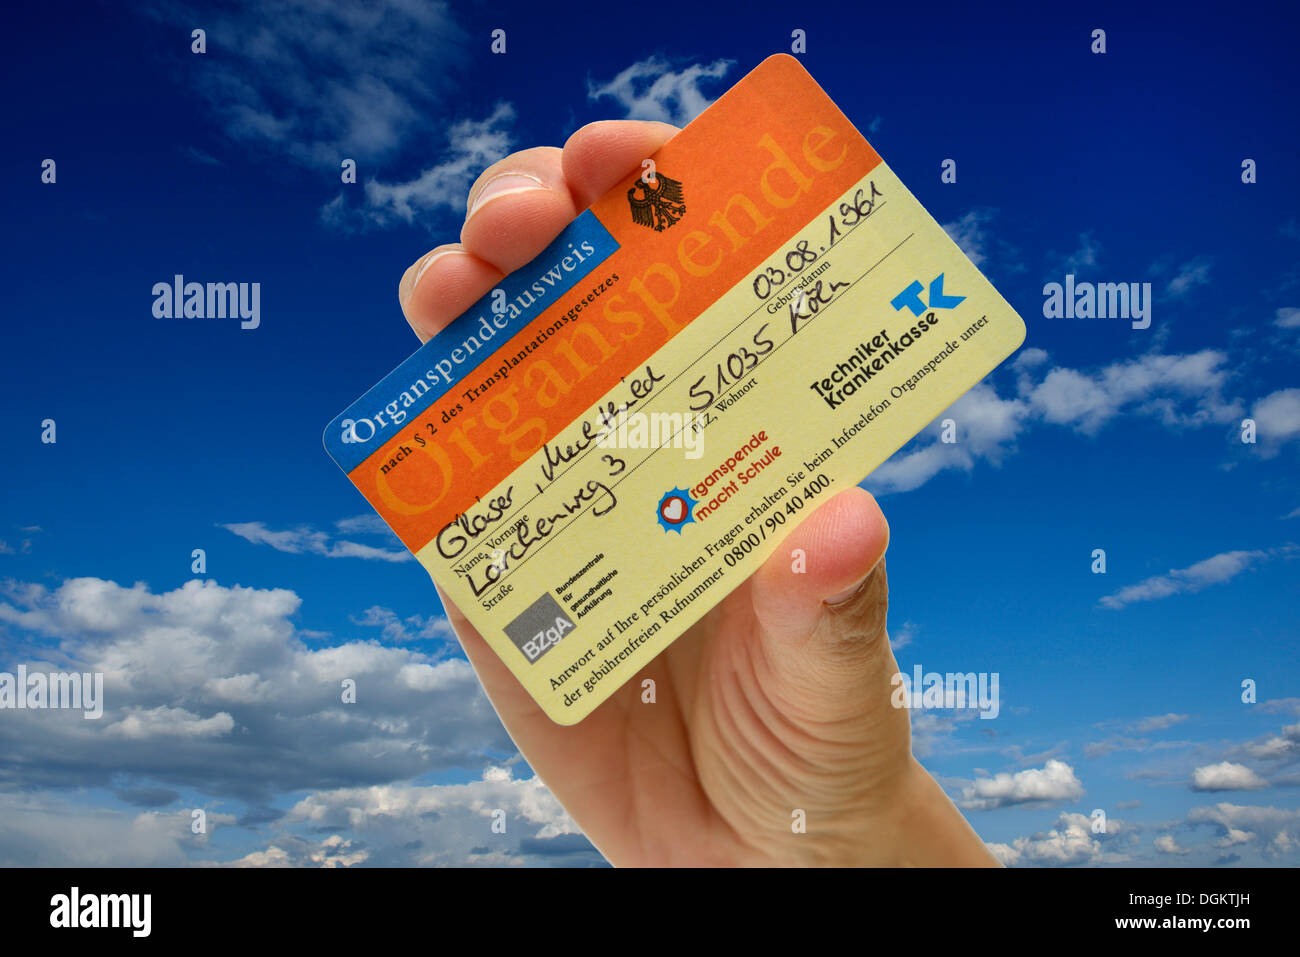 Hand holding an organ donor card, fake name, against a blue sky with some clouds, symbolic image for bearer of hope - Stock Image